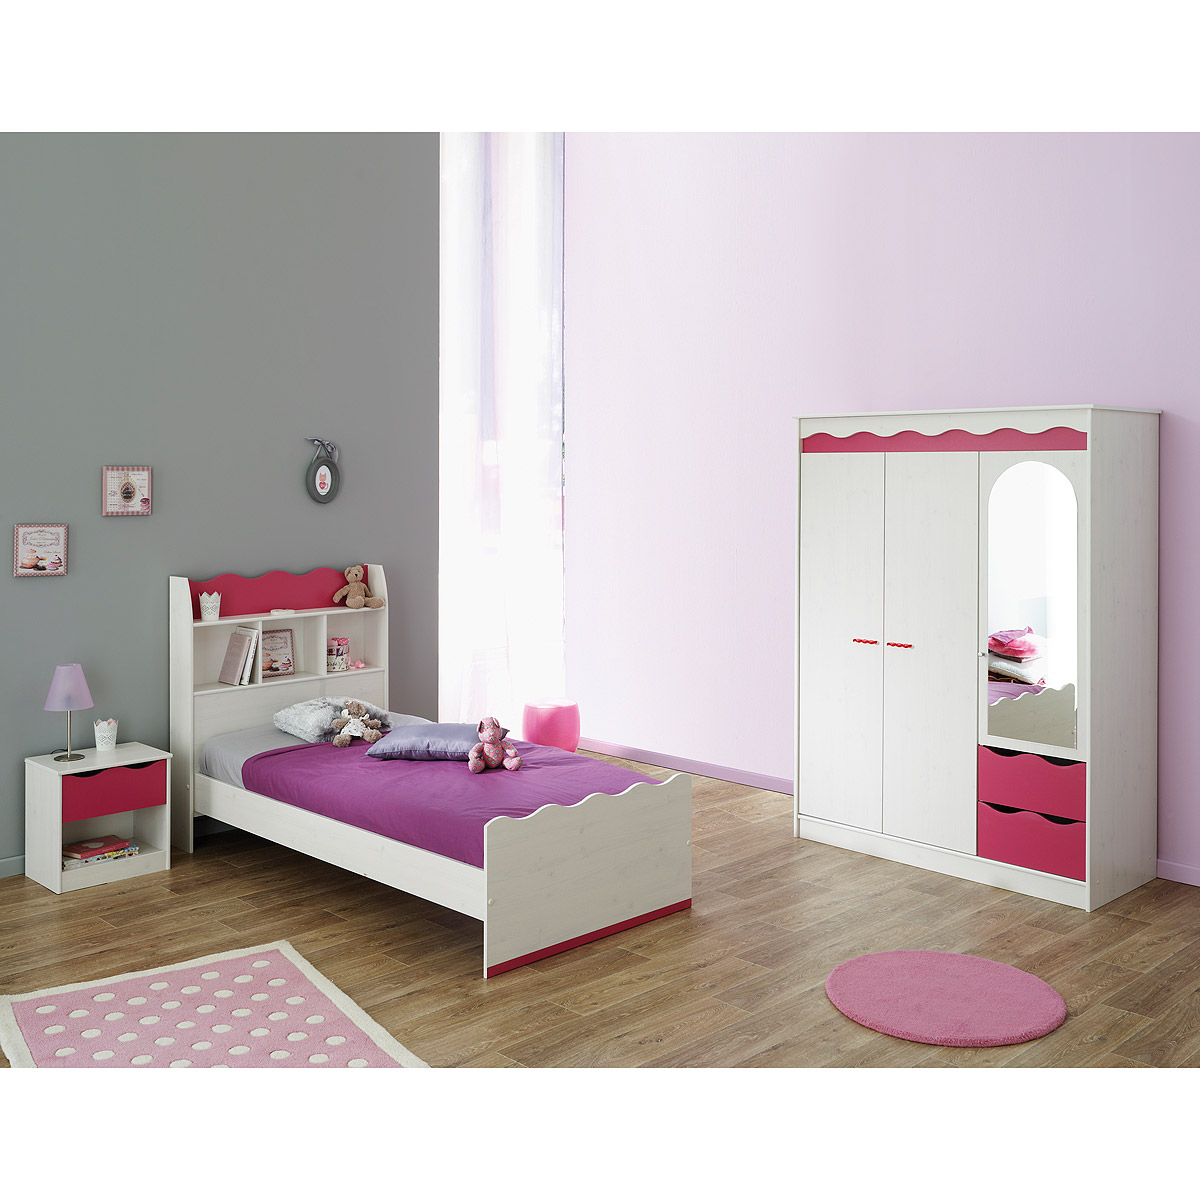 kinderzimmer lilou kinderzimmerset schrank bett nako in kiefer wei und pink ebay. Black Bedroom Furniture Sets. Home Design Ideas